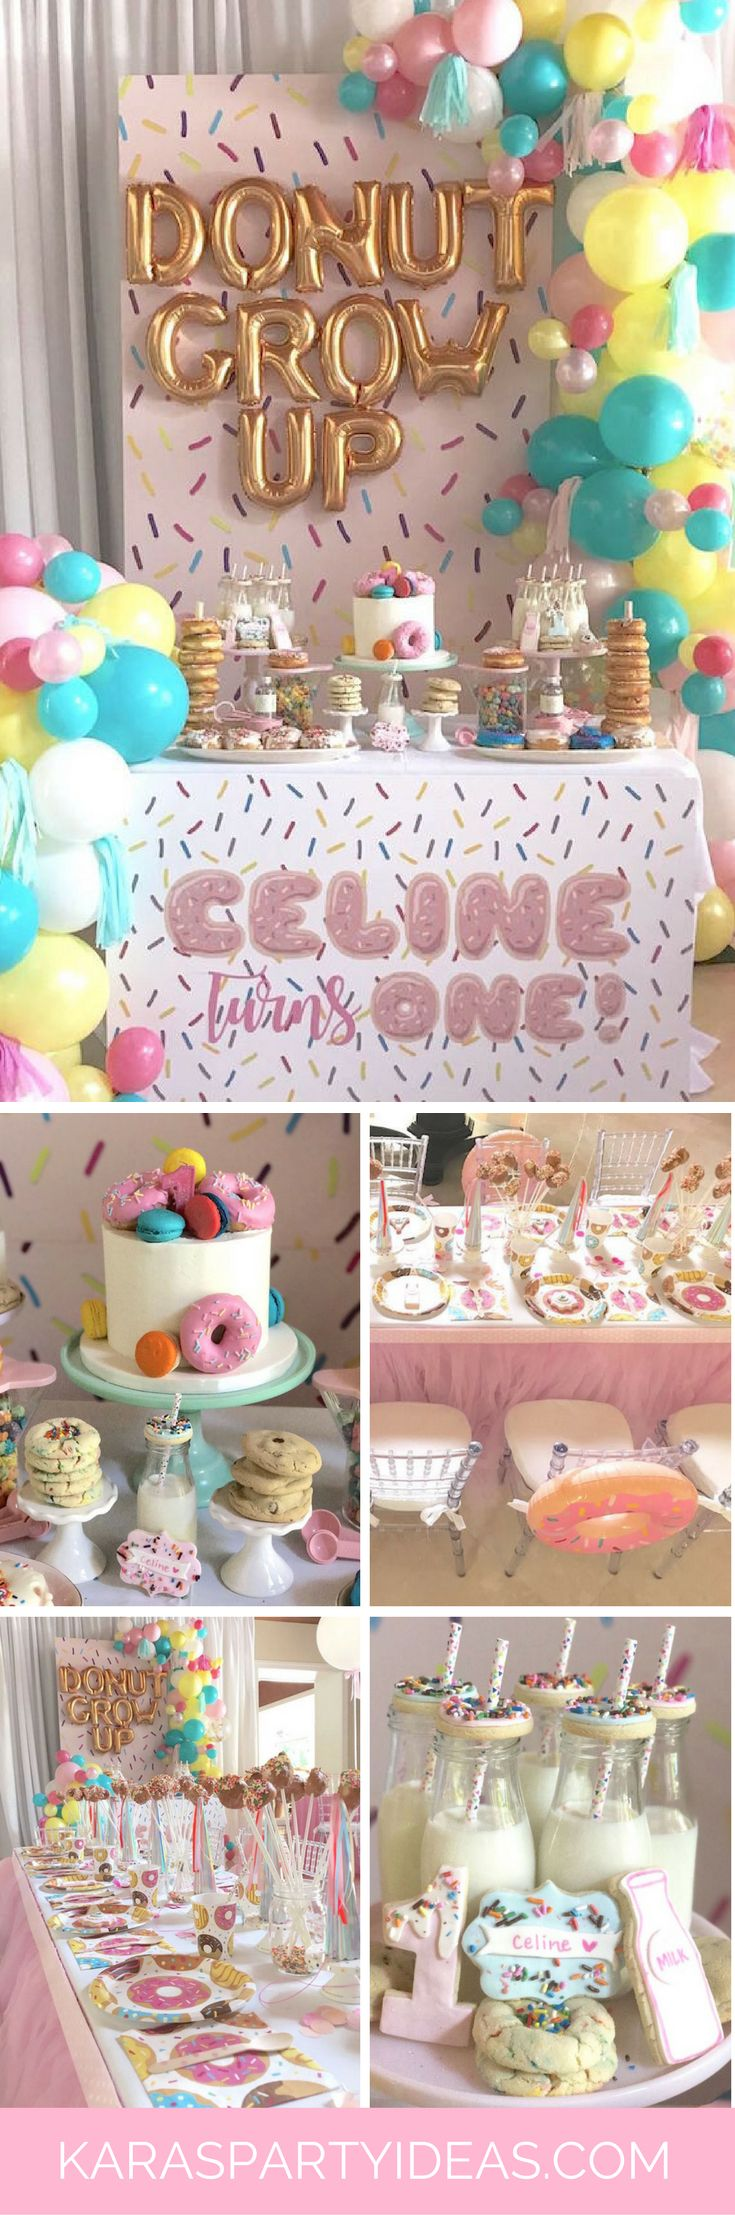 Donut Grow Up 1st Birthday Party Kara S Party Ideas Donut Birthday Parties Girls Birthday Party Birthday Parties